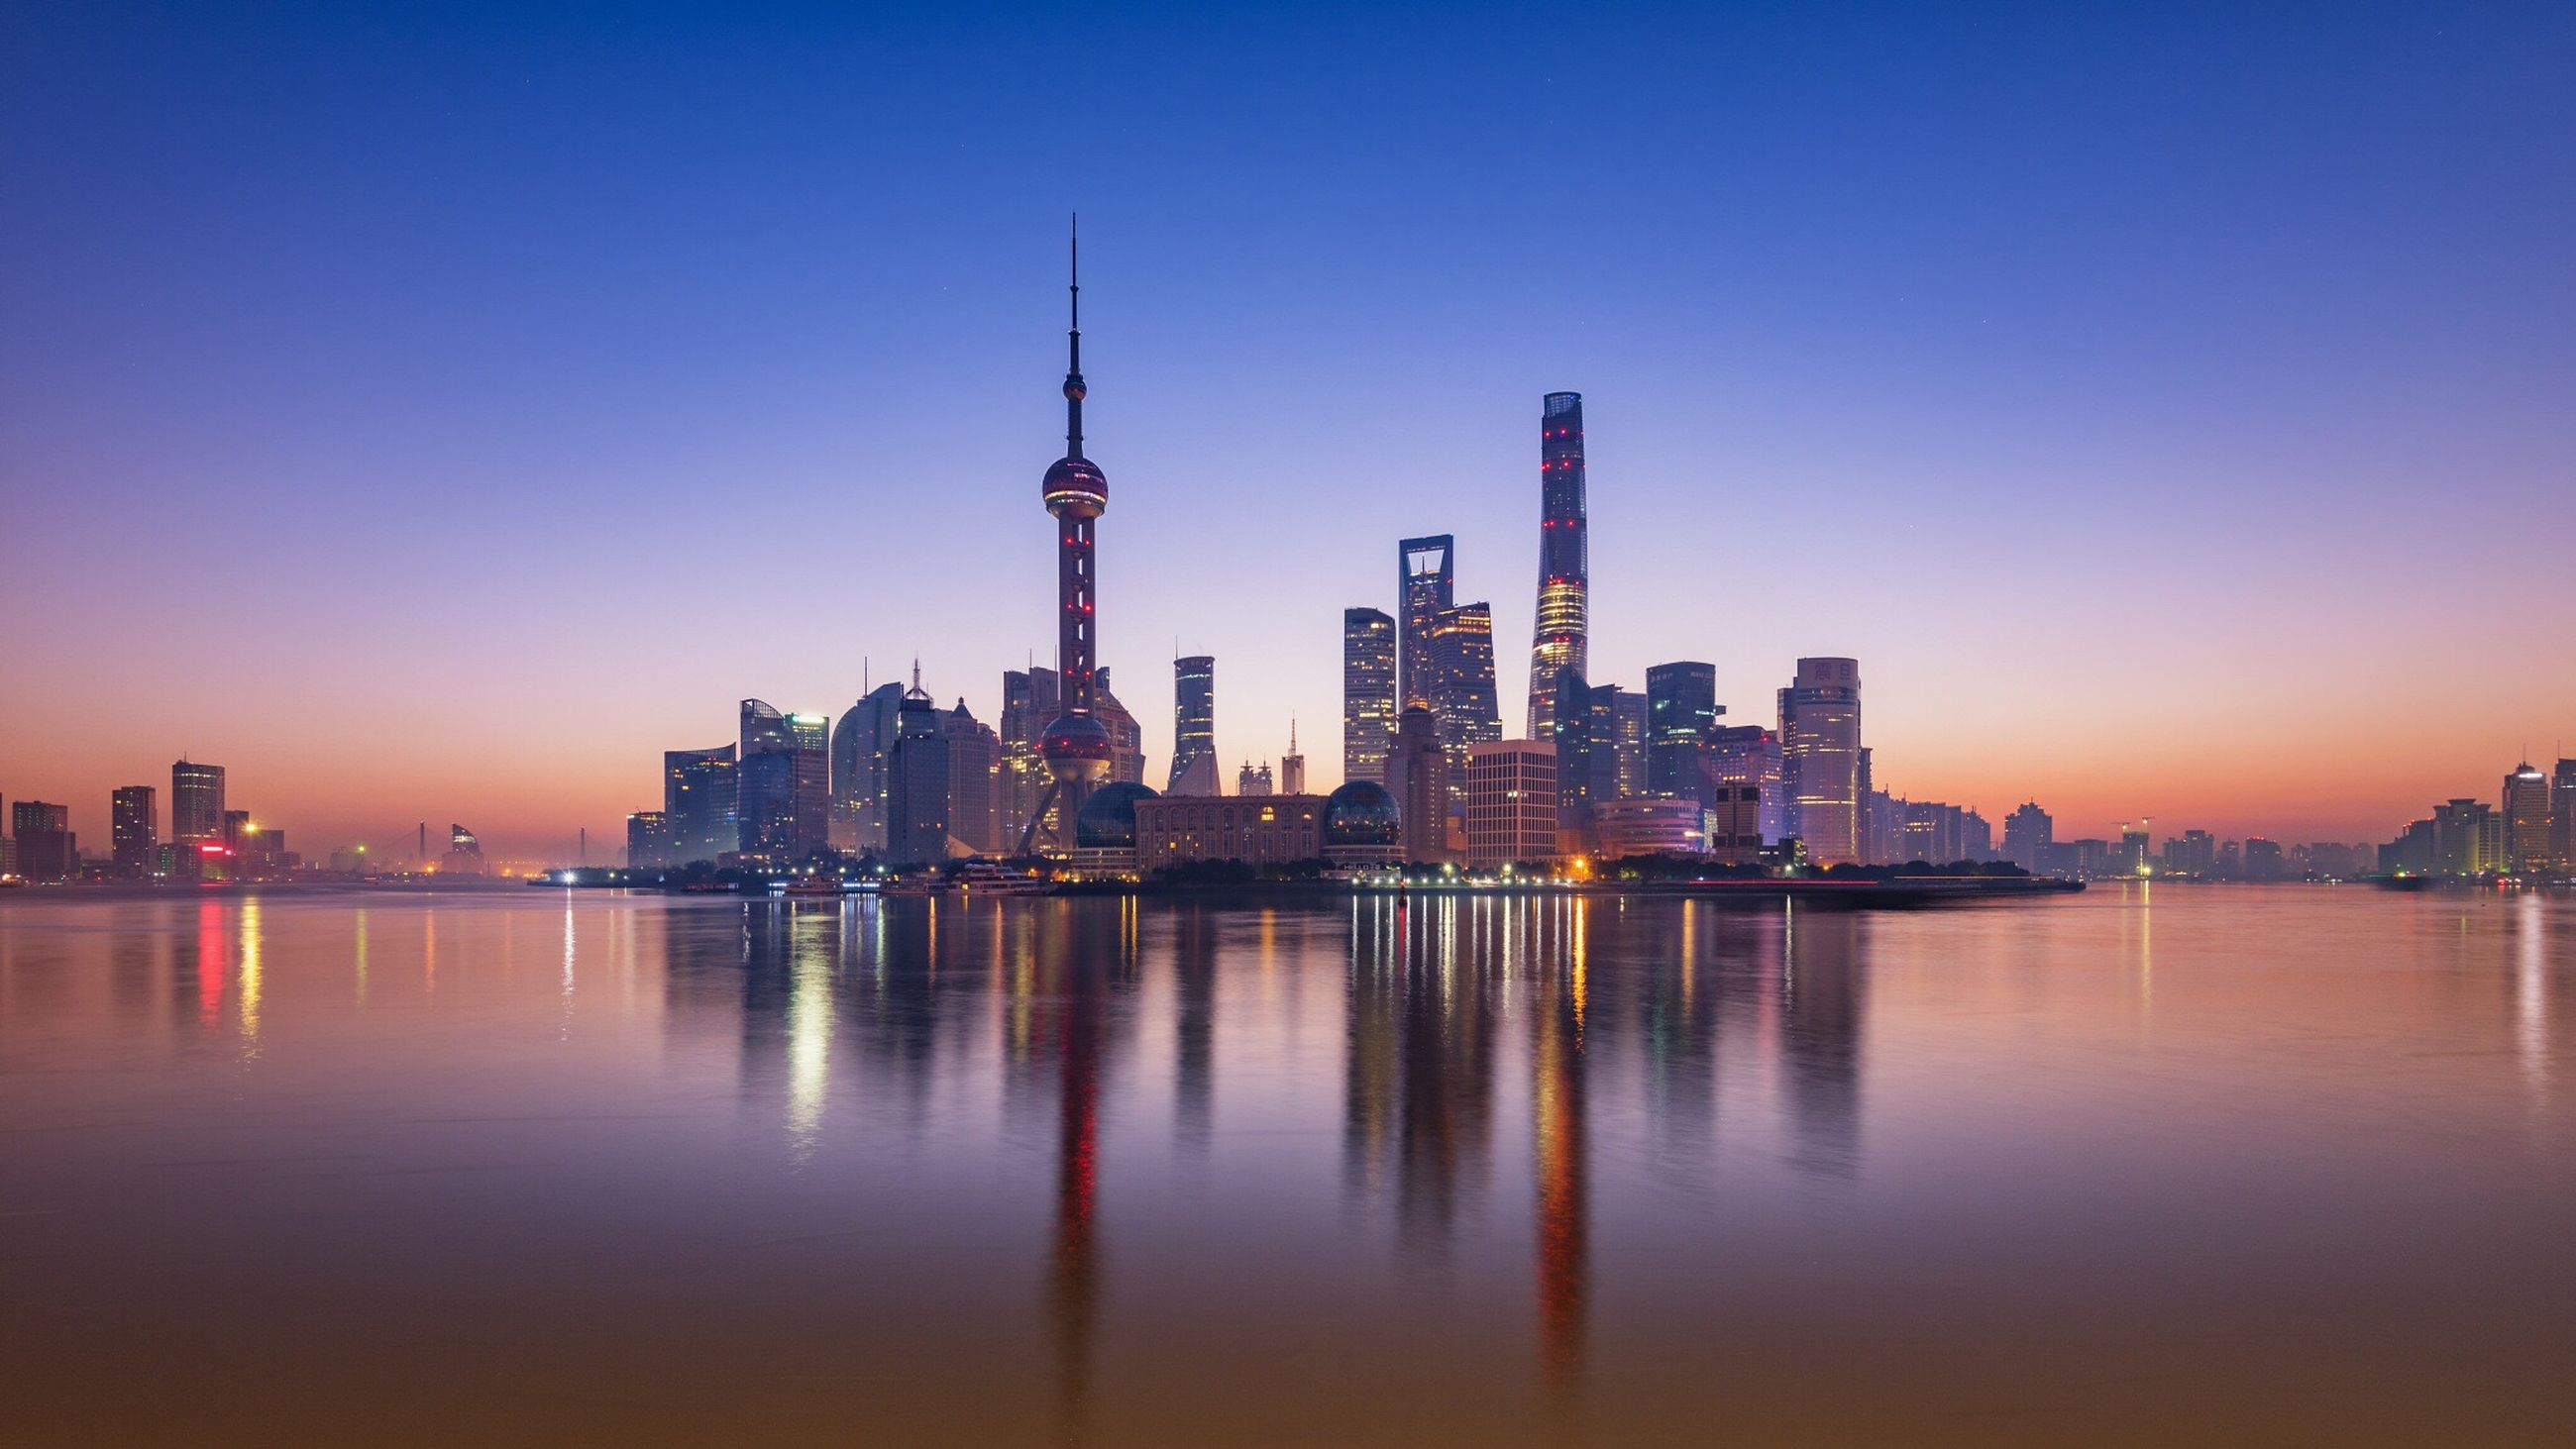 city, architecture, skyscraper, building exterior, reflection, modern, urban skyline, cityscape, built structure, sunset, tower, travel destinations, sea, outdoors, water, no people, sky, illuminated, downtown district, night